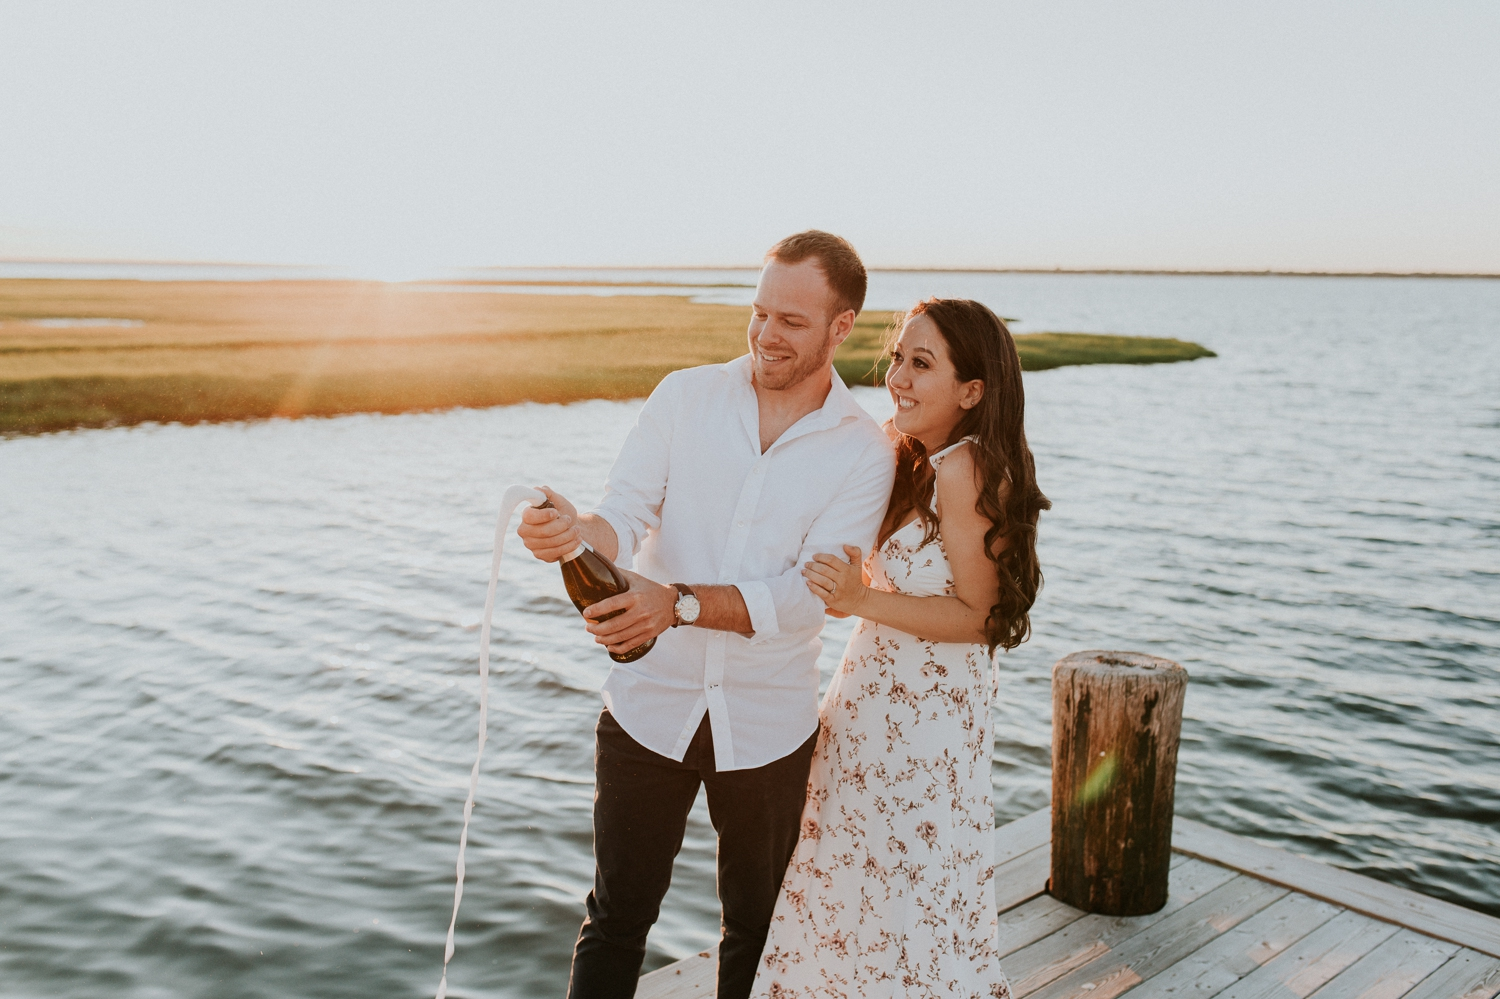 ho-hum-beach-boat-ride-engagement-photography-bellport-new-york 30.jpg